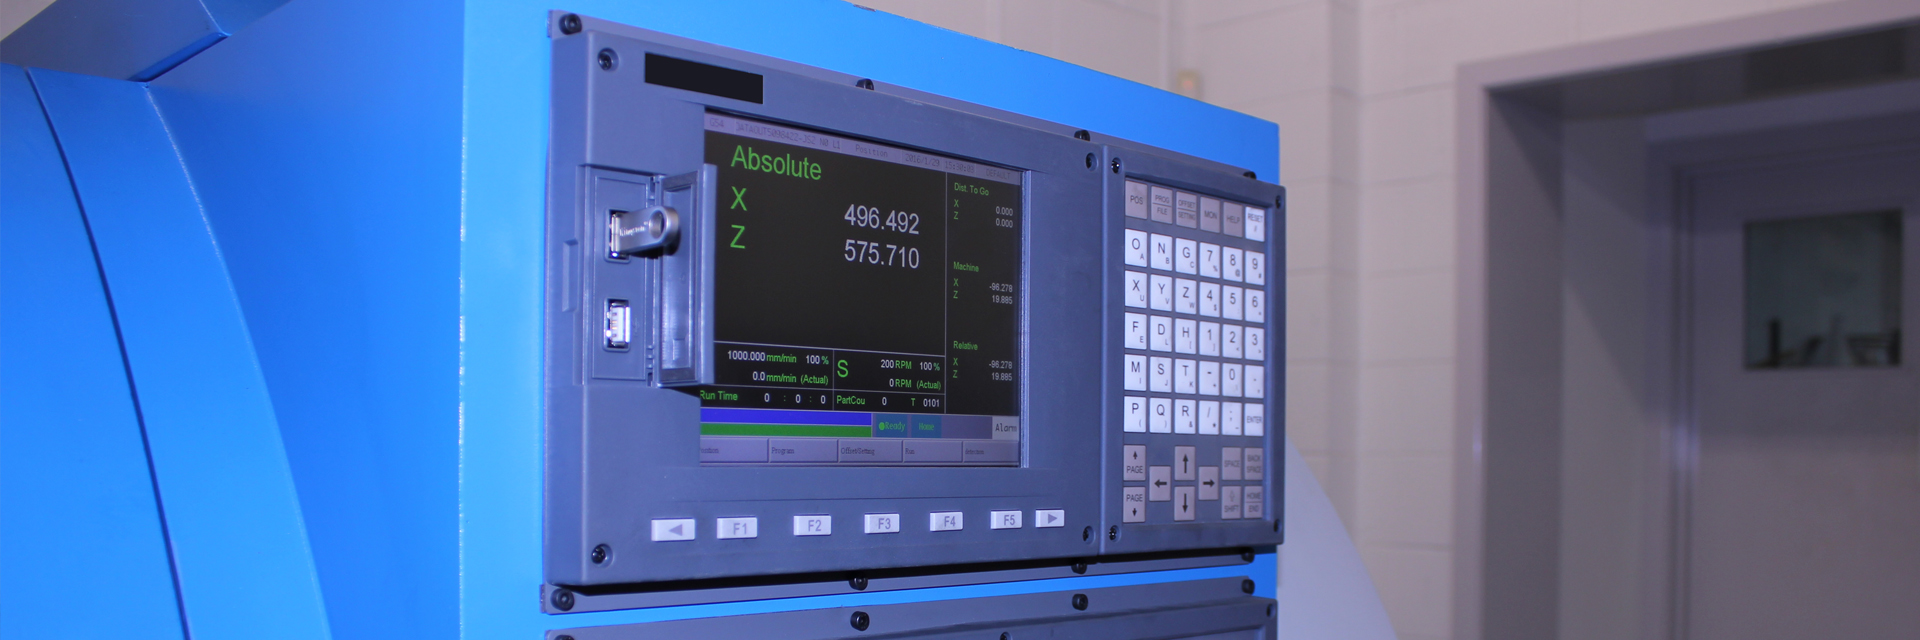 Ayce Systems' Alloy Wheel CNC Control Panel